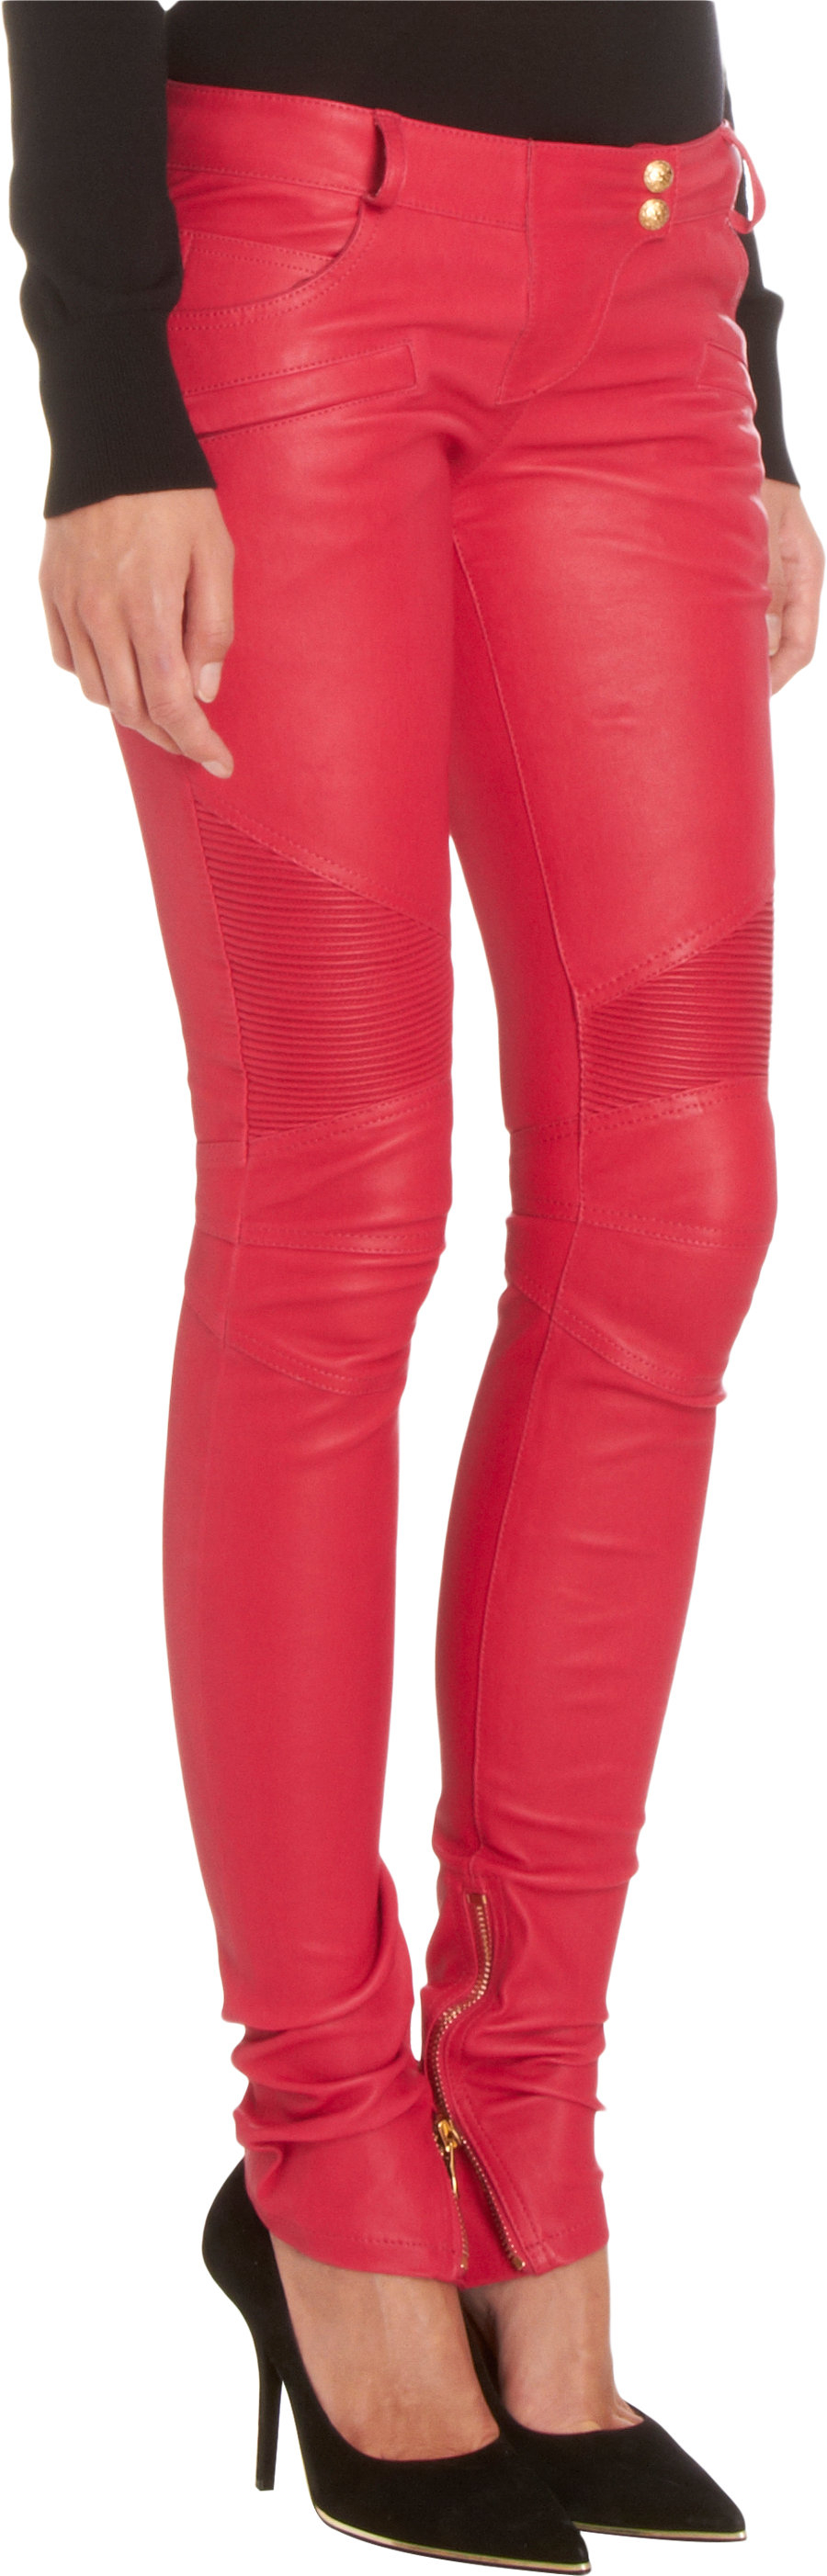 0f0aeddb Gallery. Previously sold at: Barneys Warehouse · Women's Red Leather Pants